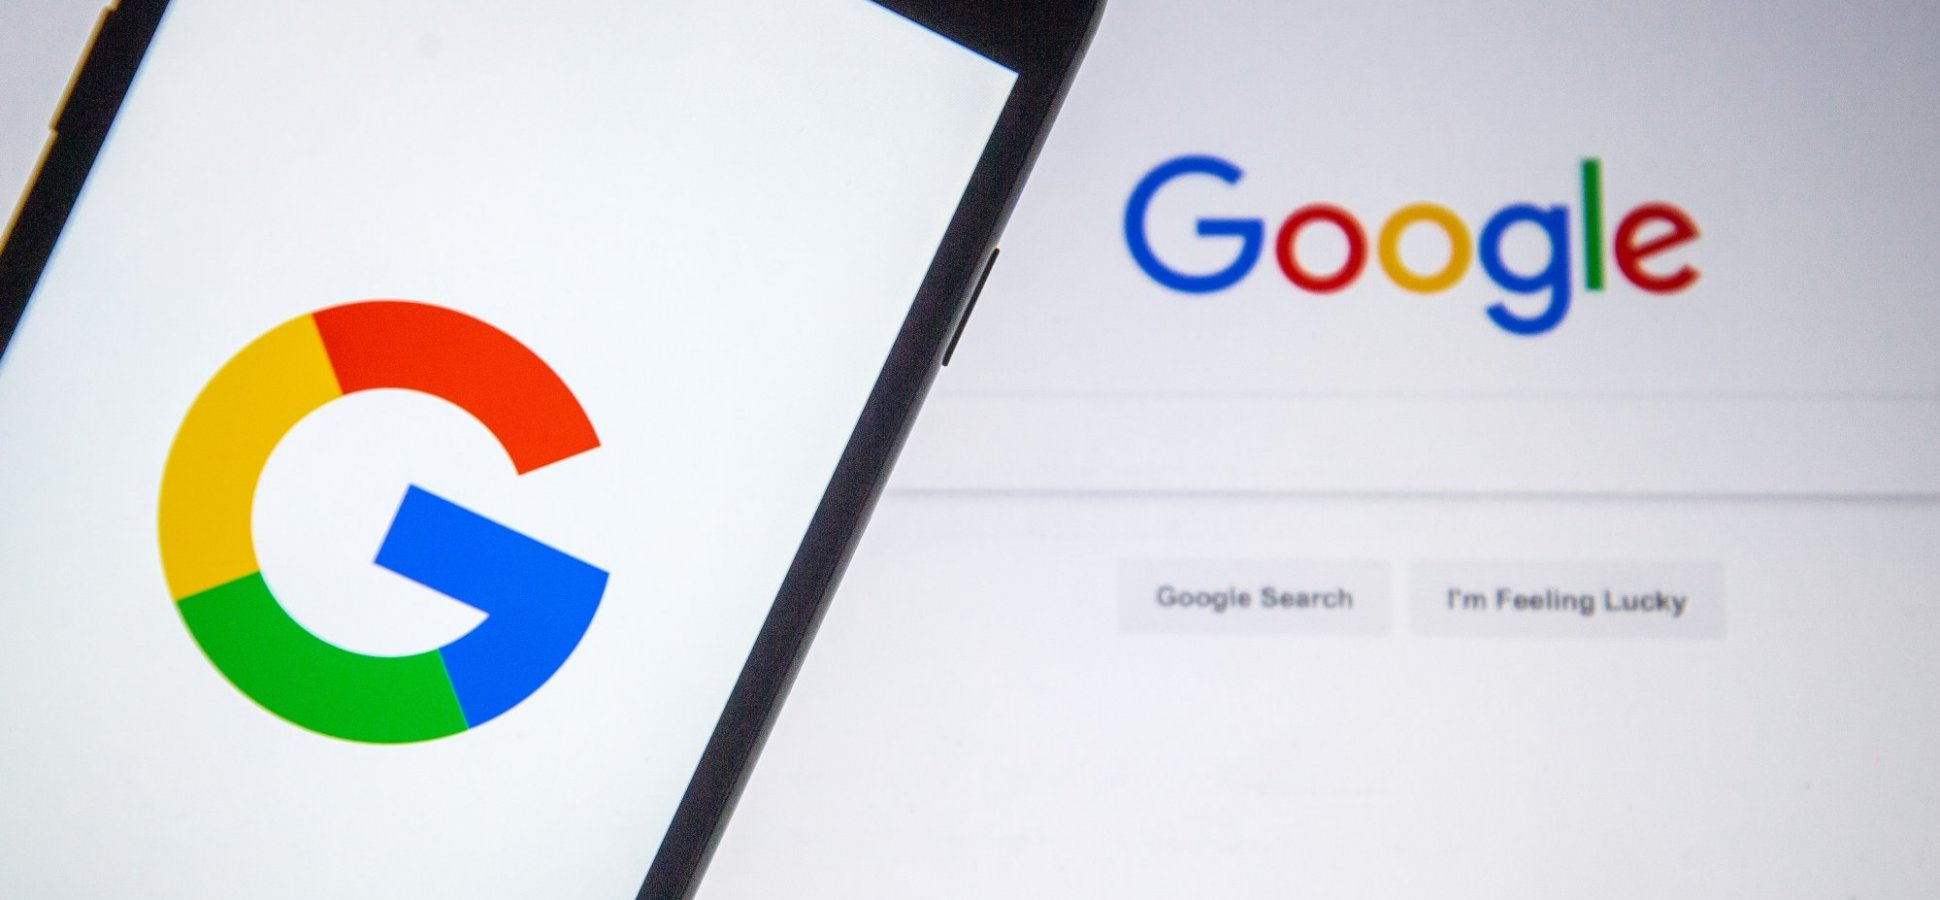 Google Just Released the Top Search Trends for 2019 and It Reveals What We Care About Most